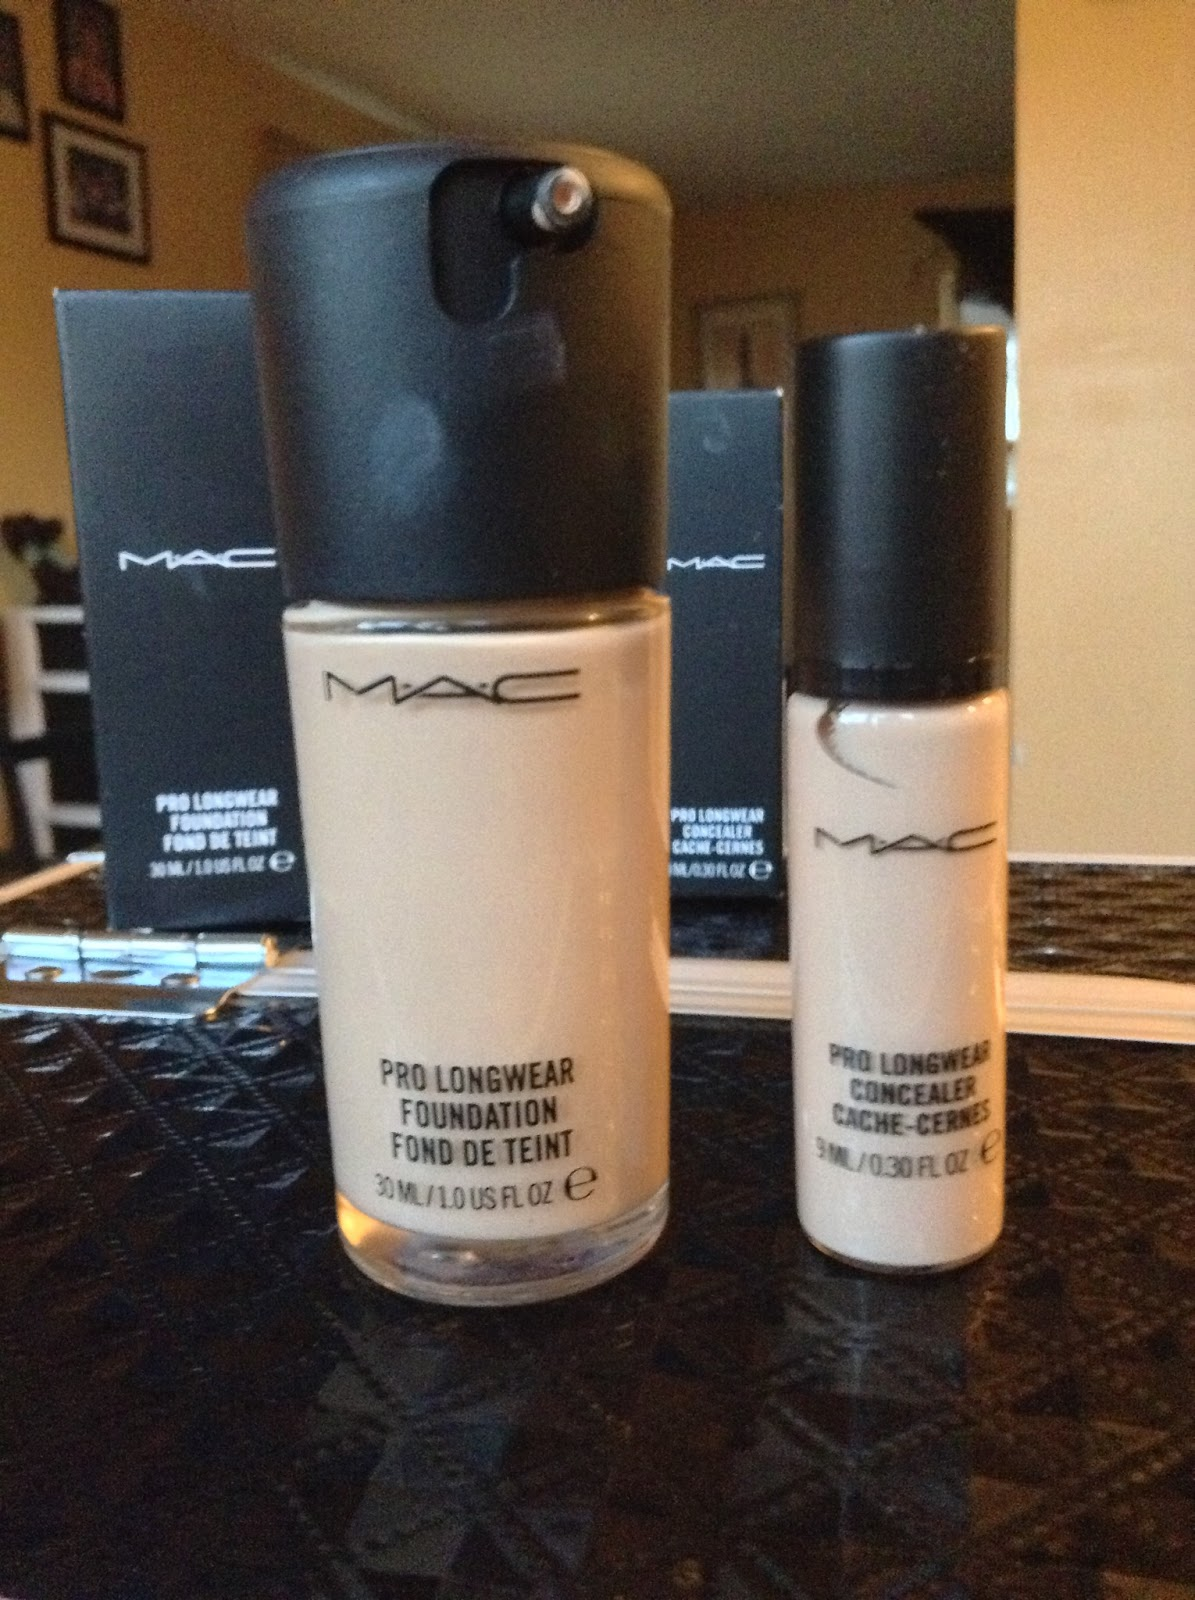 Pro Foundation Mixers By Nyx Professional Makeup: Only The Best Beauty: M.A.C. PRO LONGWEAR FOUNDATION